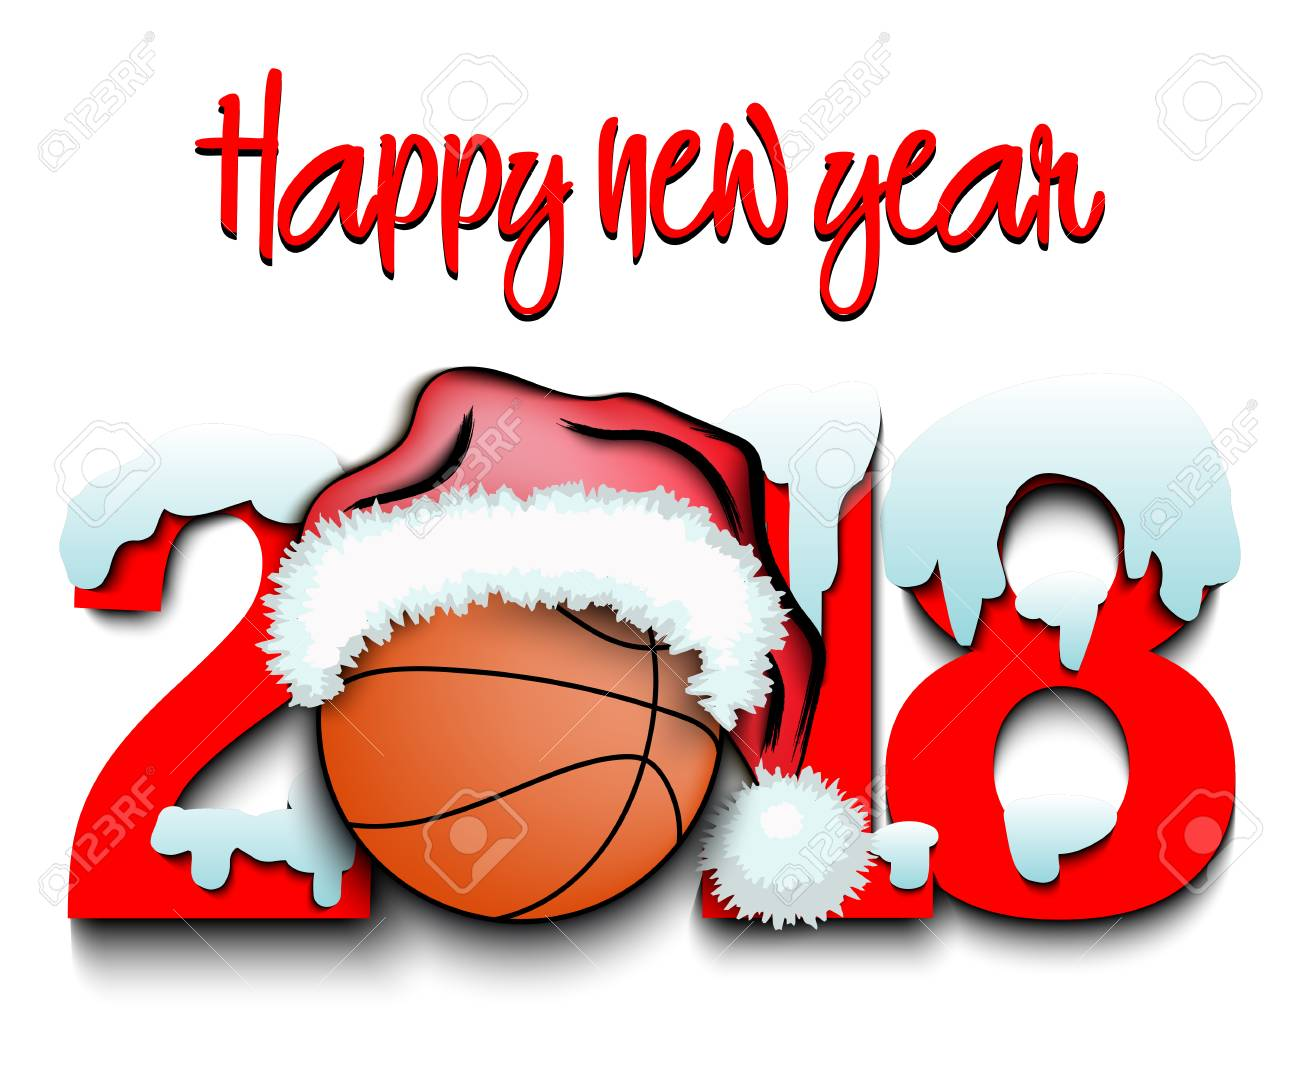 http://previews.123rf.com/images/mityaypg/mityaypg1711/mityaypg171100364/90585422-snowy-new-year-numbers-2018-and-basketball-in-a-christmas-hat-with-basketball-boots-vector-illustrat-Stock-Vector.jpg